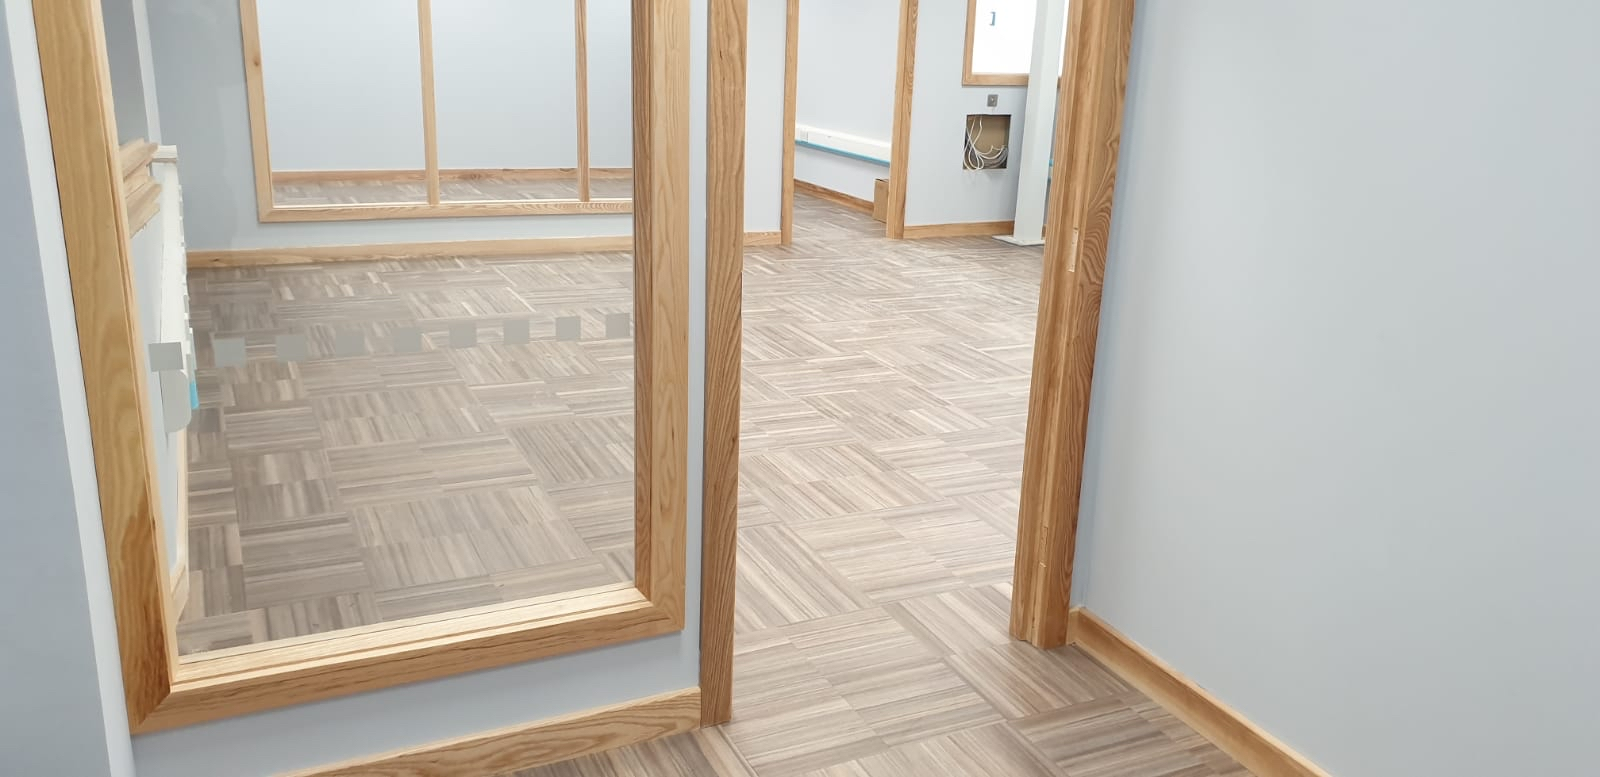 CEI Electrical Wholesalers Amtico tiles to offices